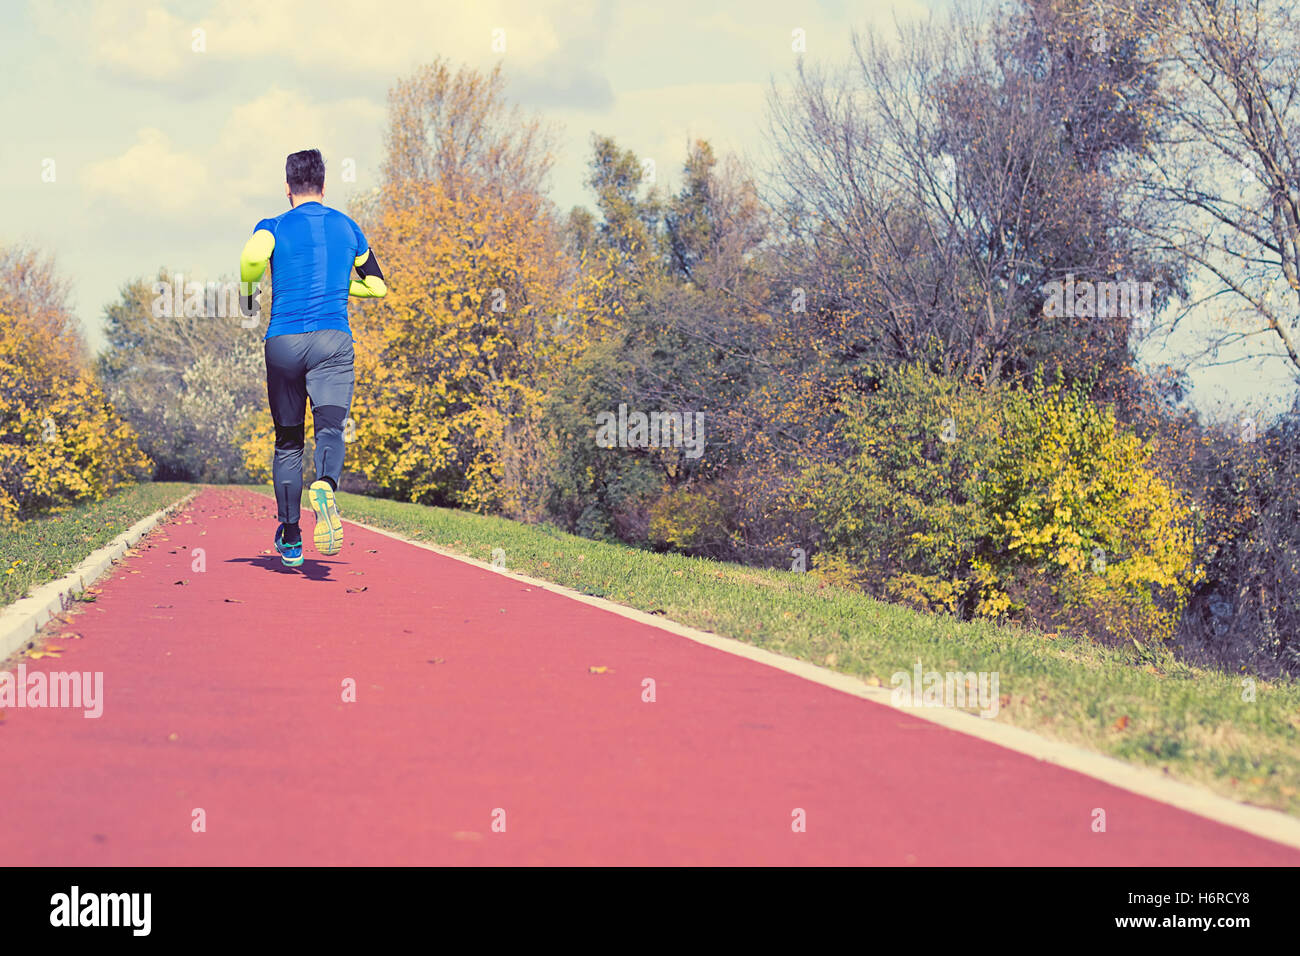 Jogging in the park Autumn Edition. Young man in sports clothing jogging in park - Stock Image